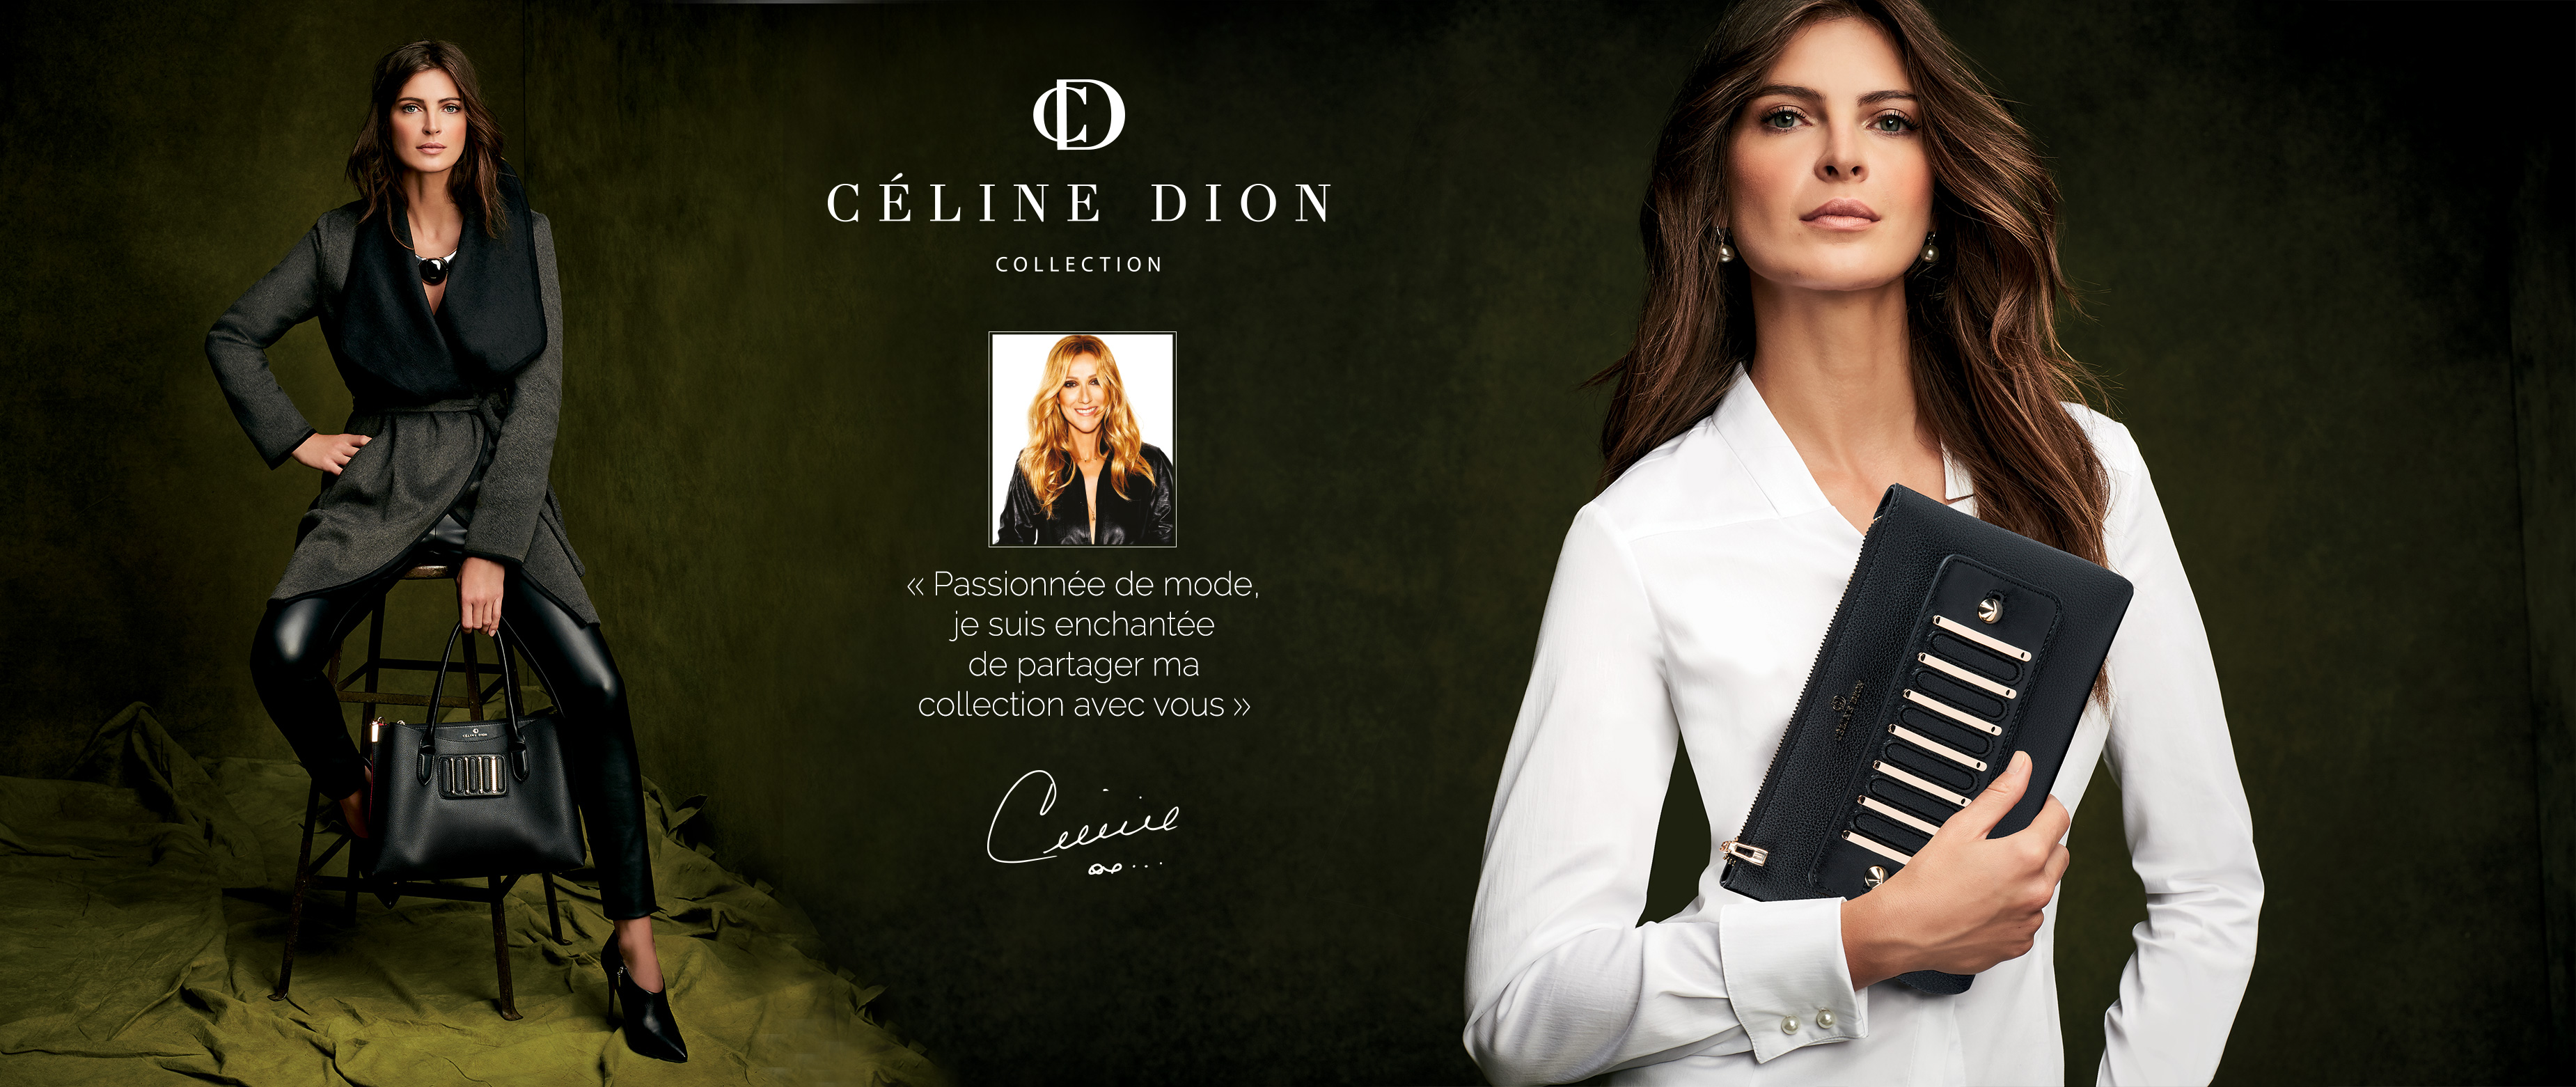 AUTOMNE 2017 Celine Dion Collection